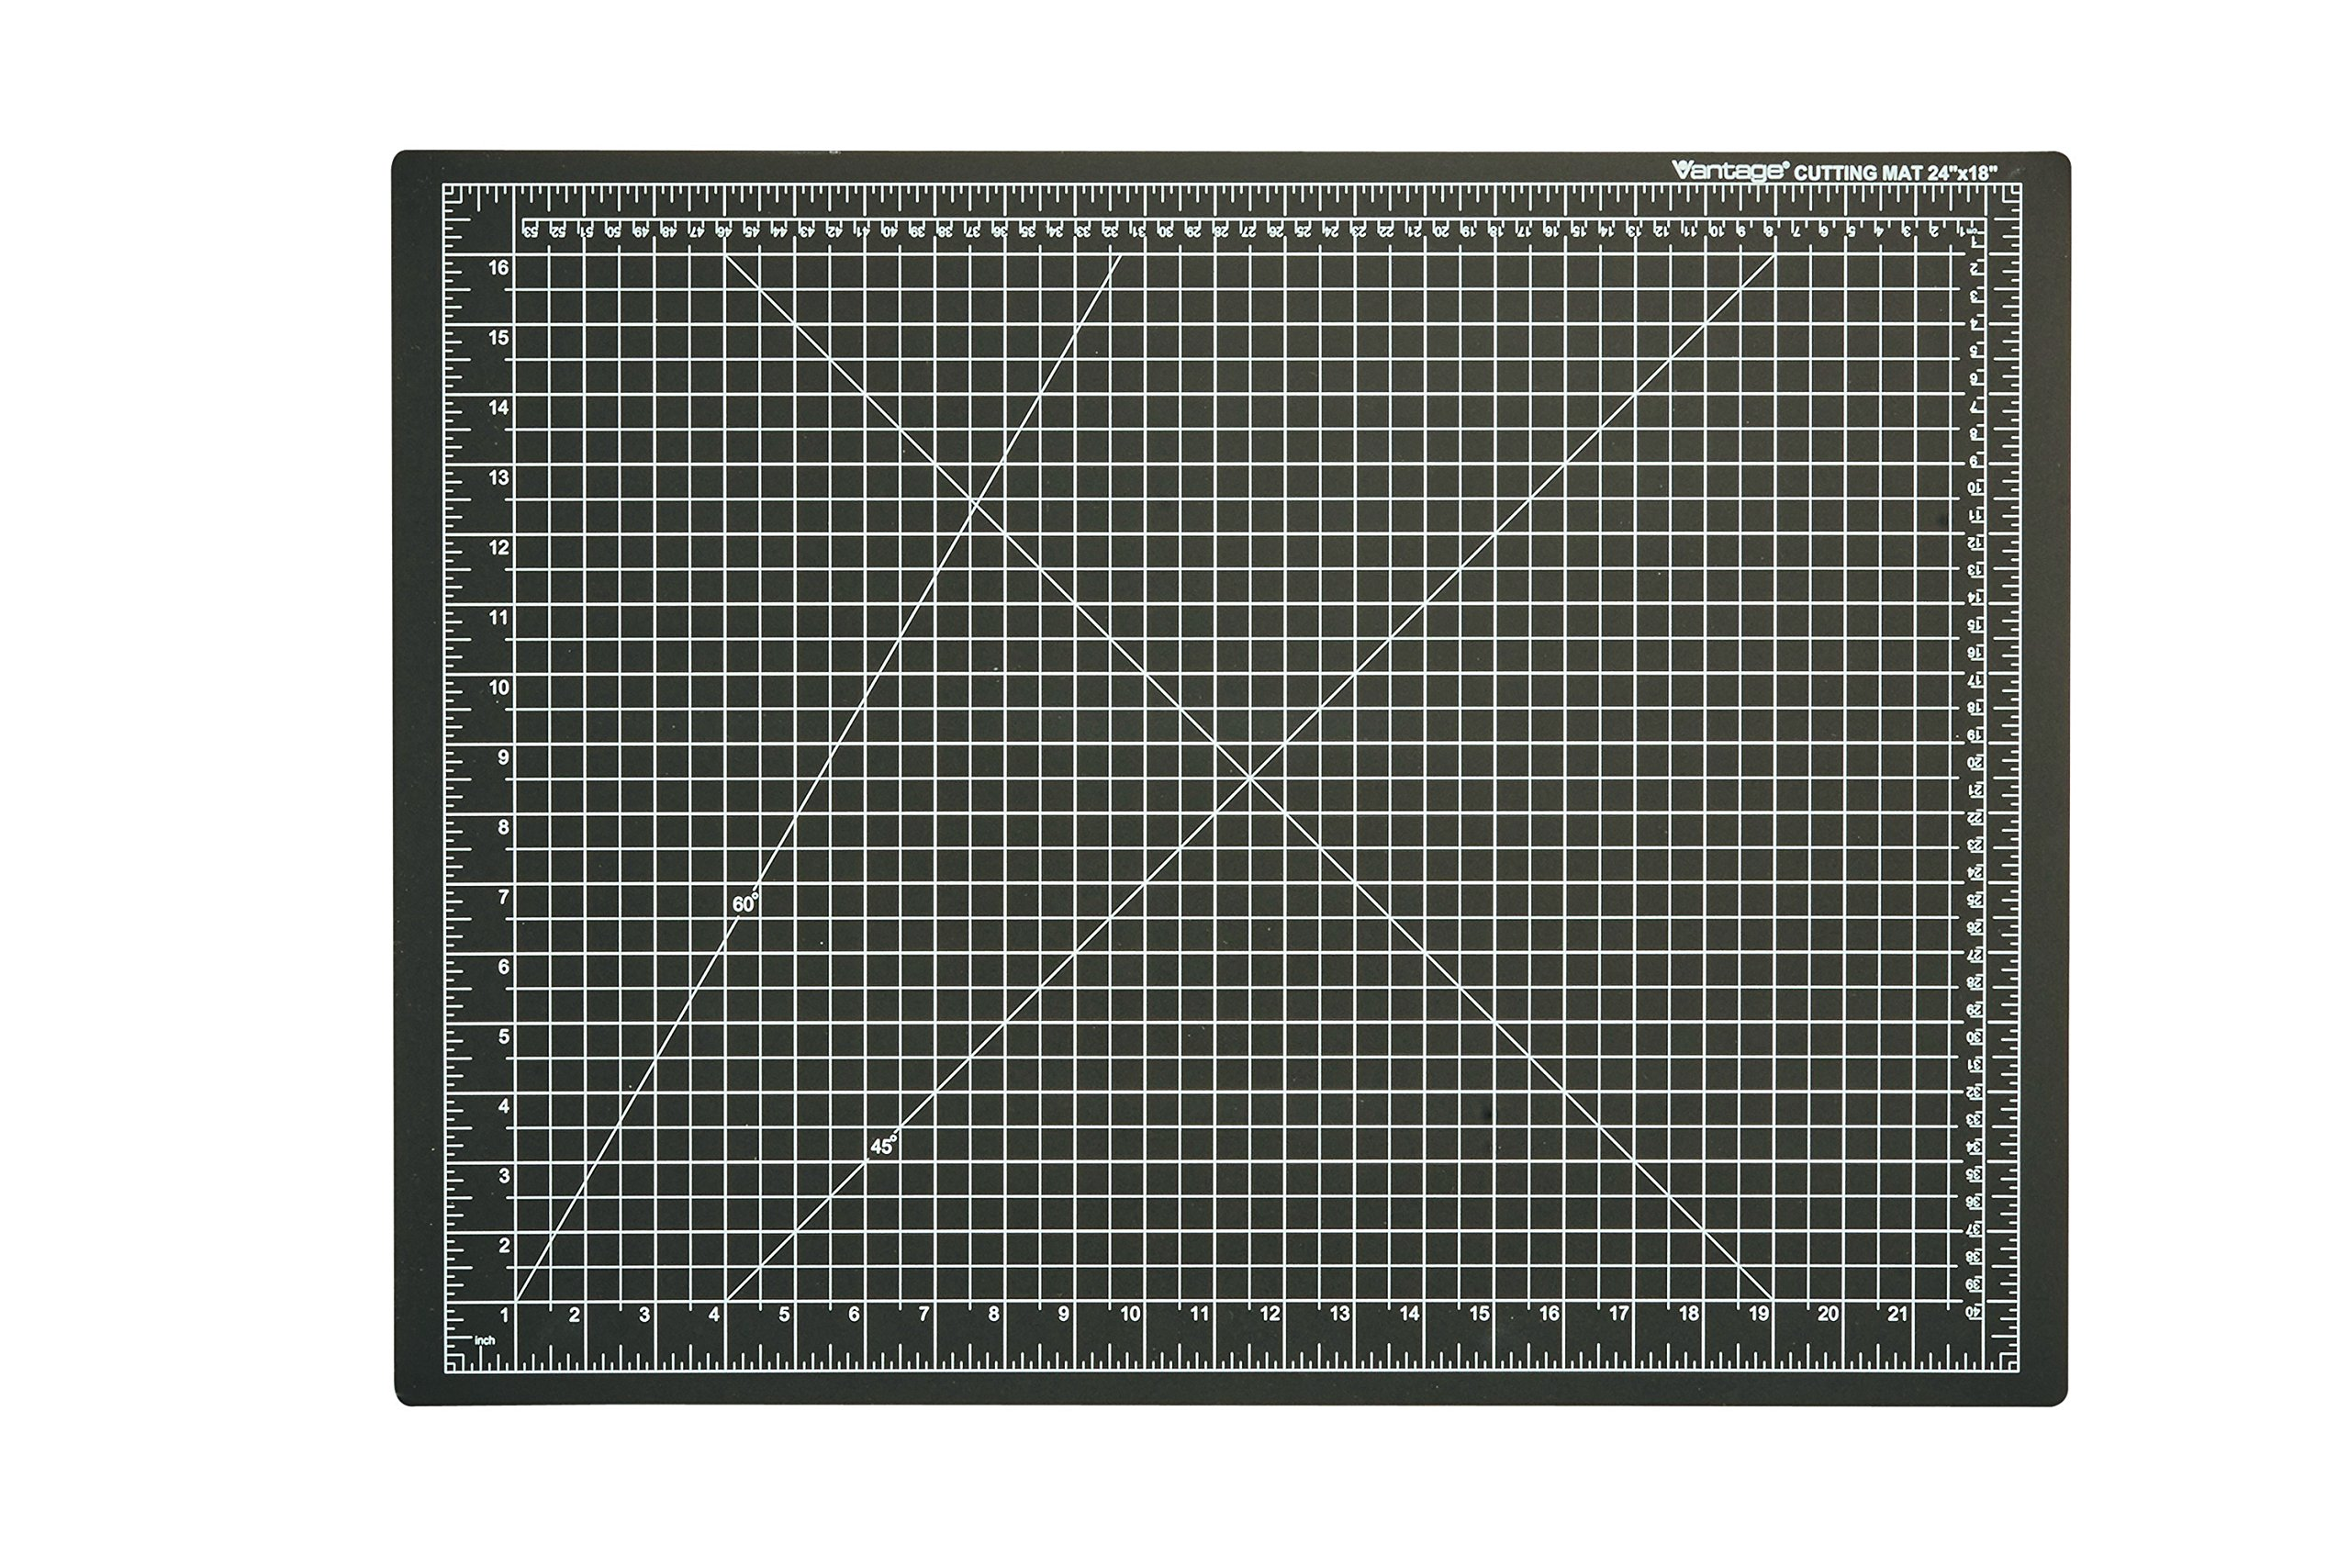 Dahle Vantage 10672 Self-Healing Cutting Mat, 18''x24'', 1/2'' Grid, 5 Layers for Max Healing, Perfect for Cropping, Sewing, & Crafts, Black